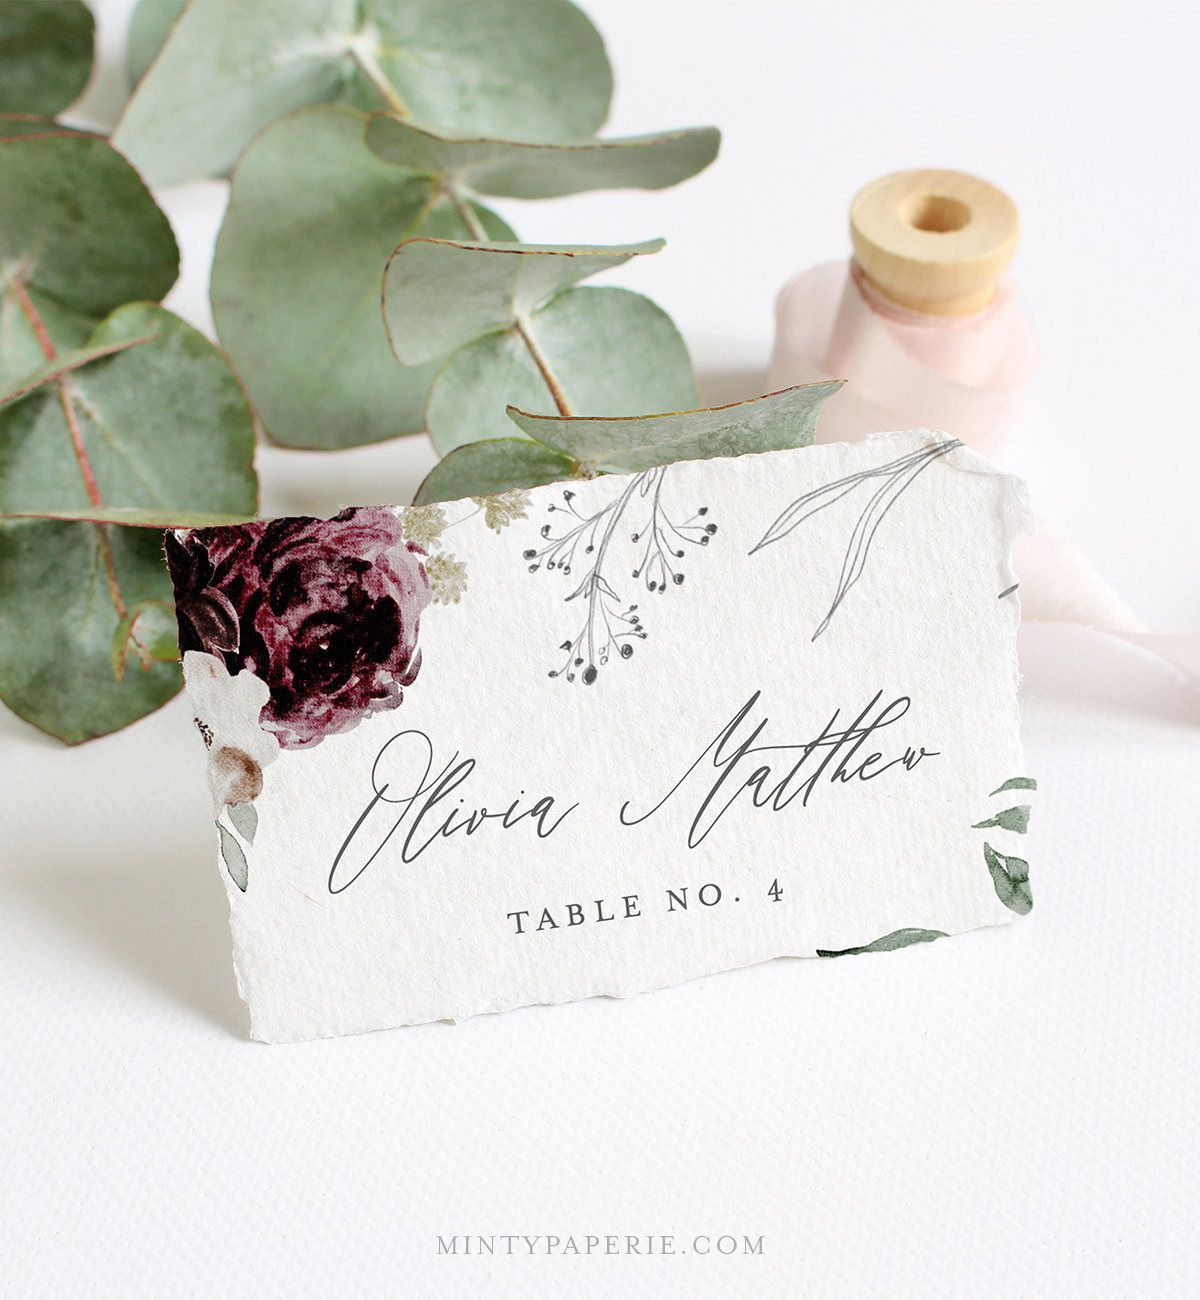 006 Simple Name Place Card Template For Wedding Inspiration  Free WordFull